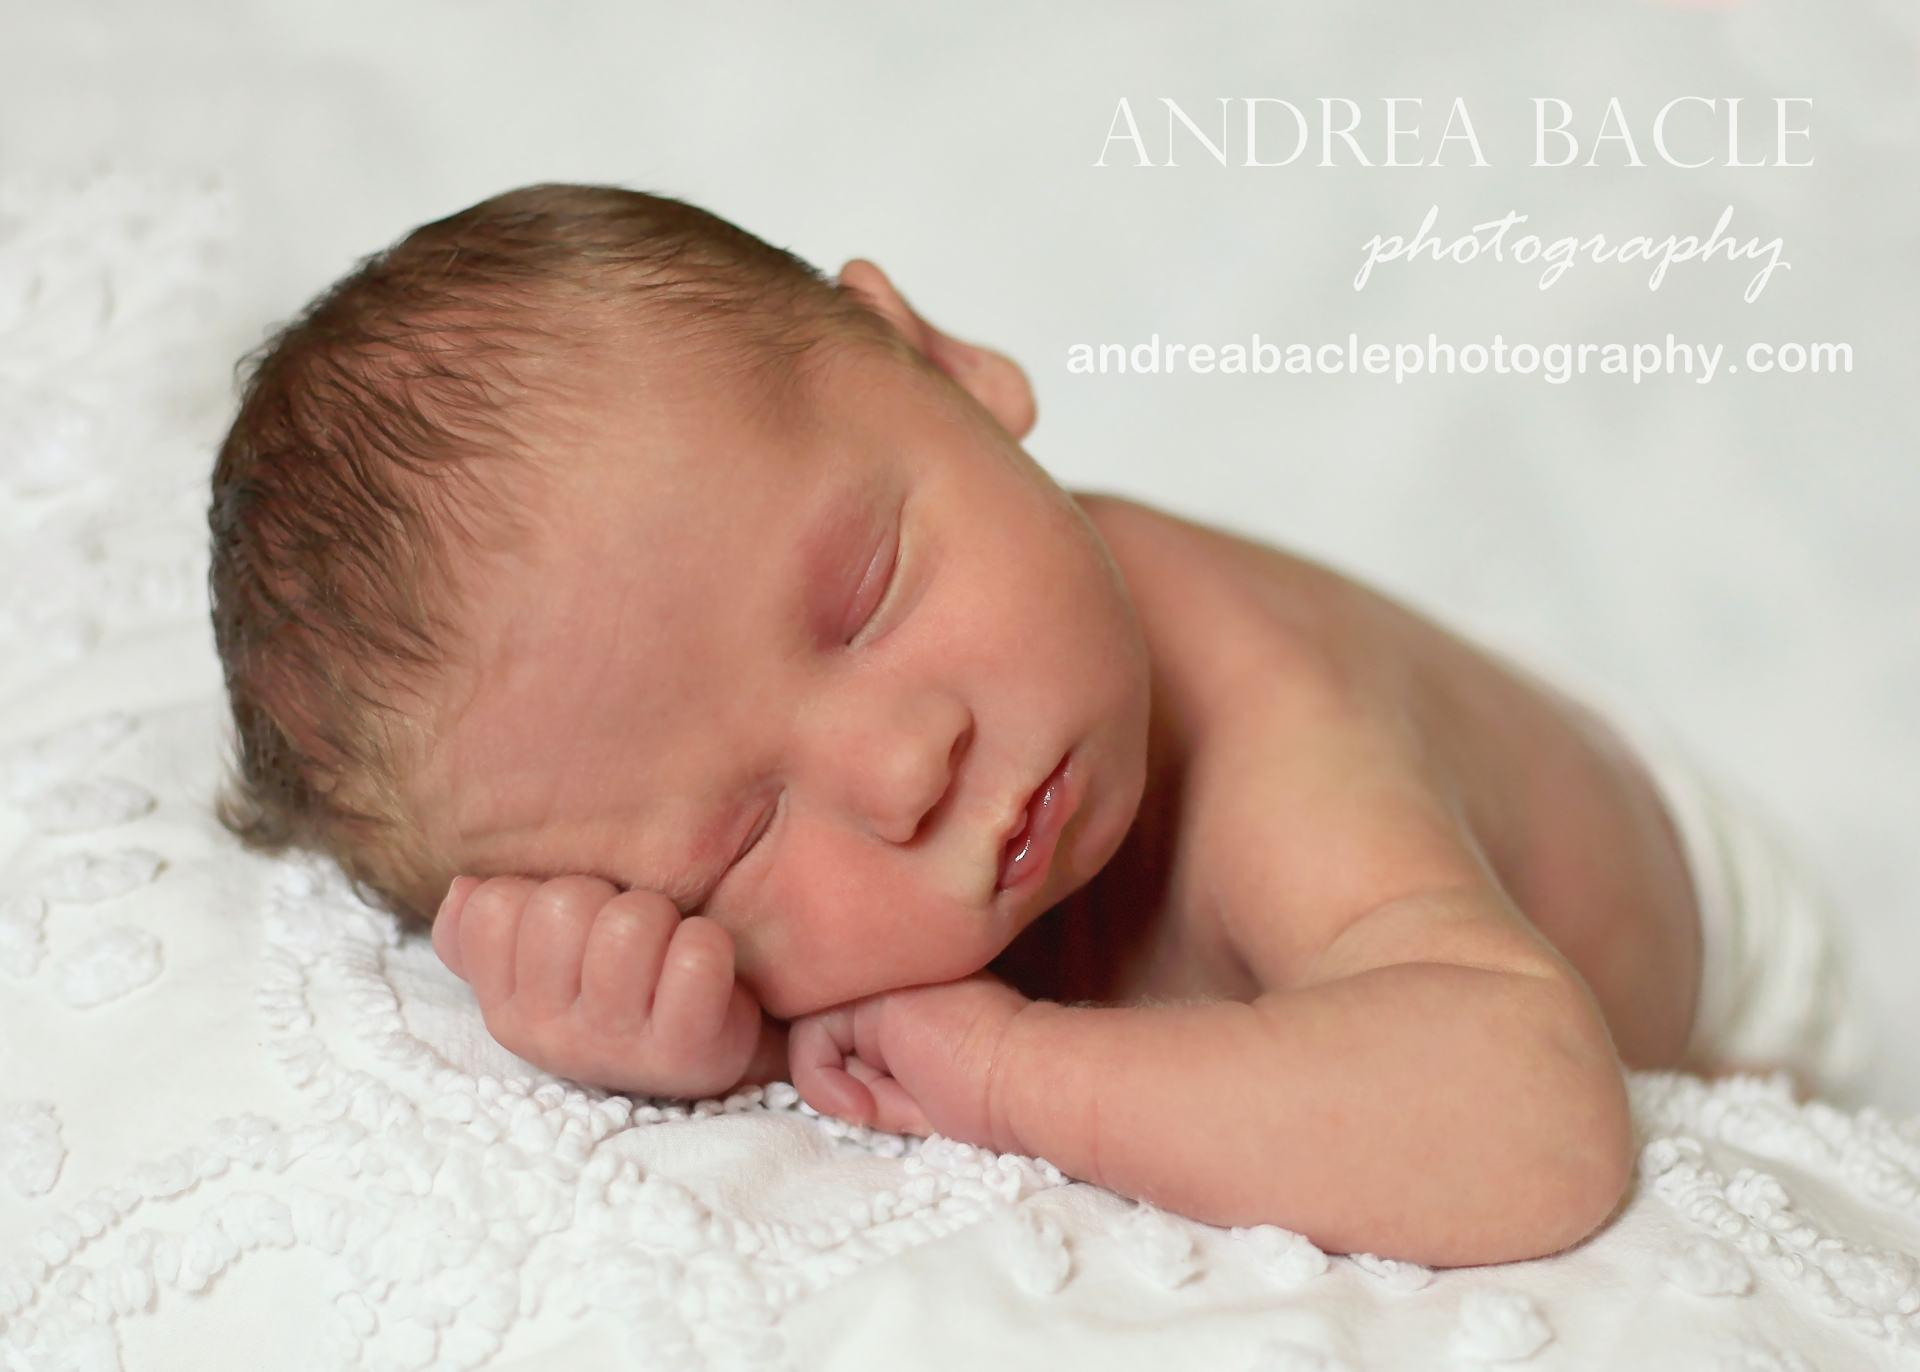 New Baby Backgrounds